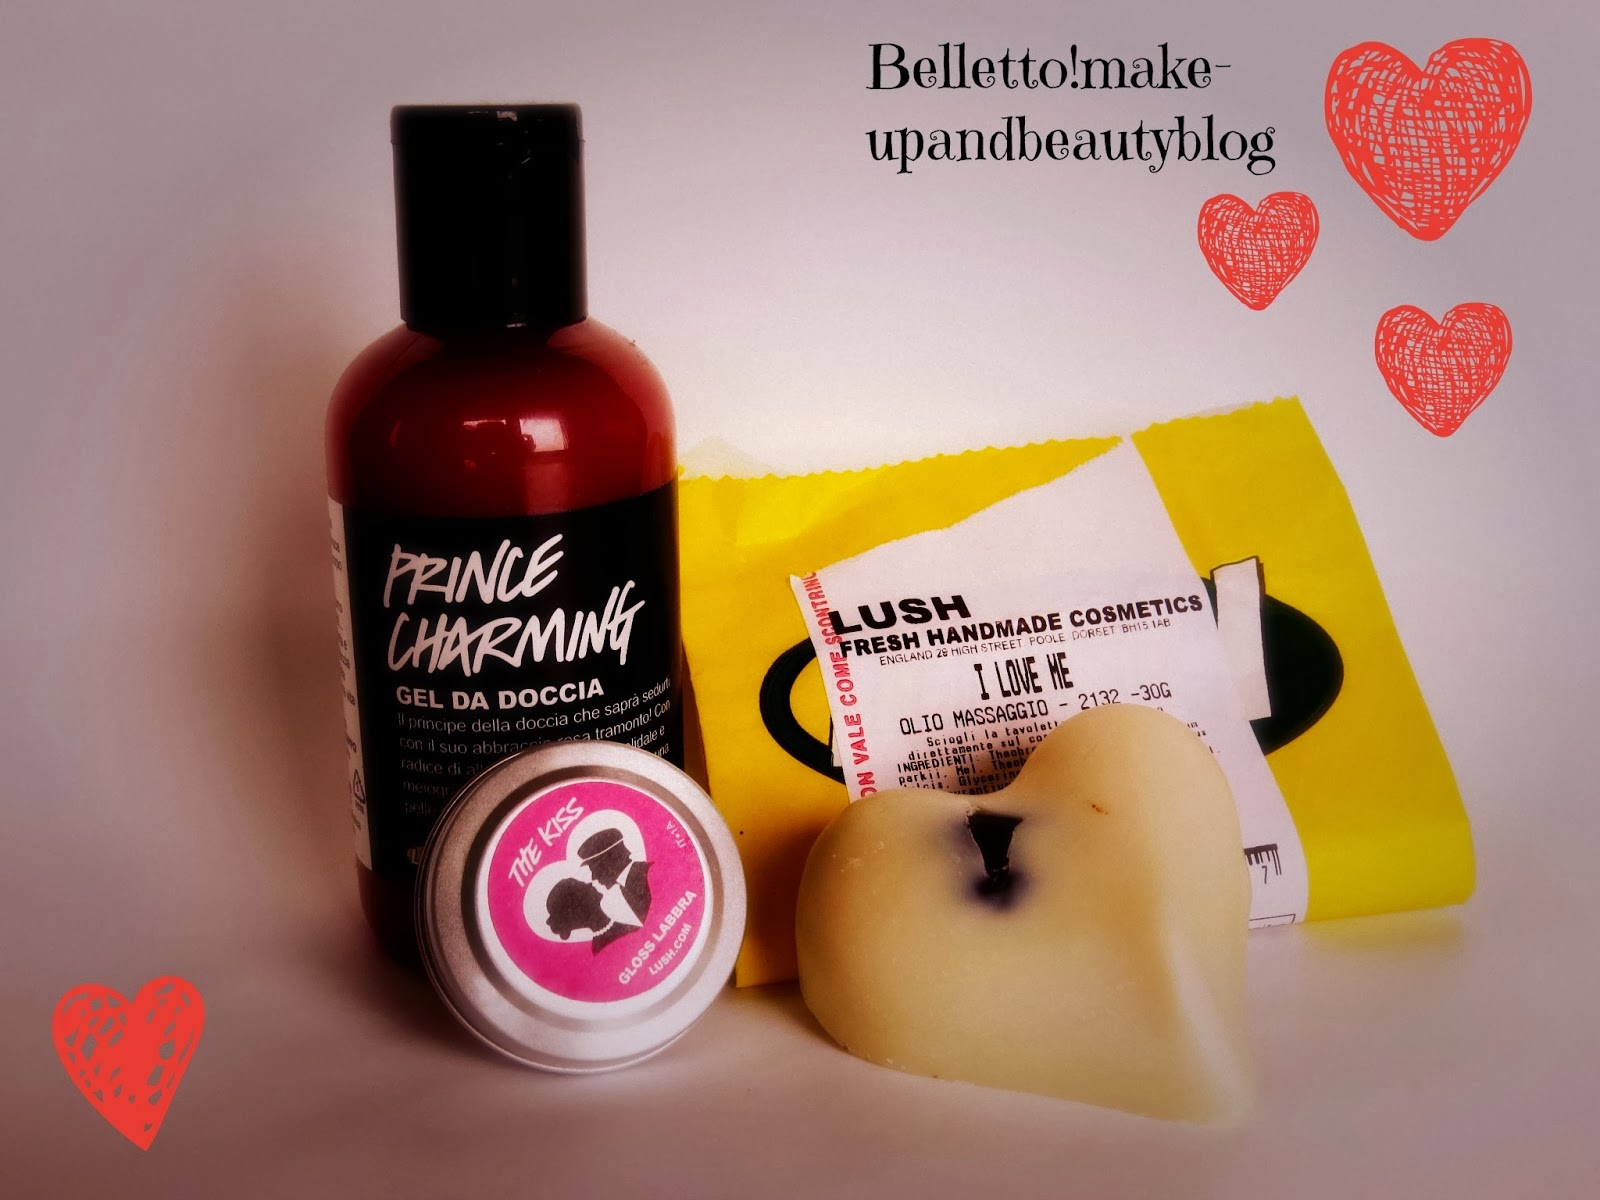 http://bellettomake-upandbeautyblog.blogspot.it/2014/02/be-my-valentine-giveawayfesteggiamo.html